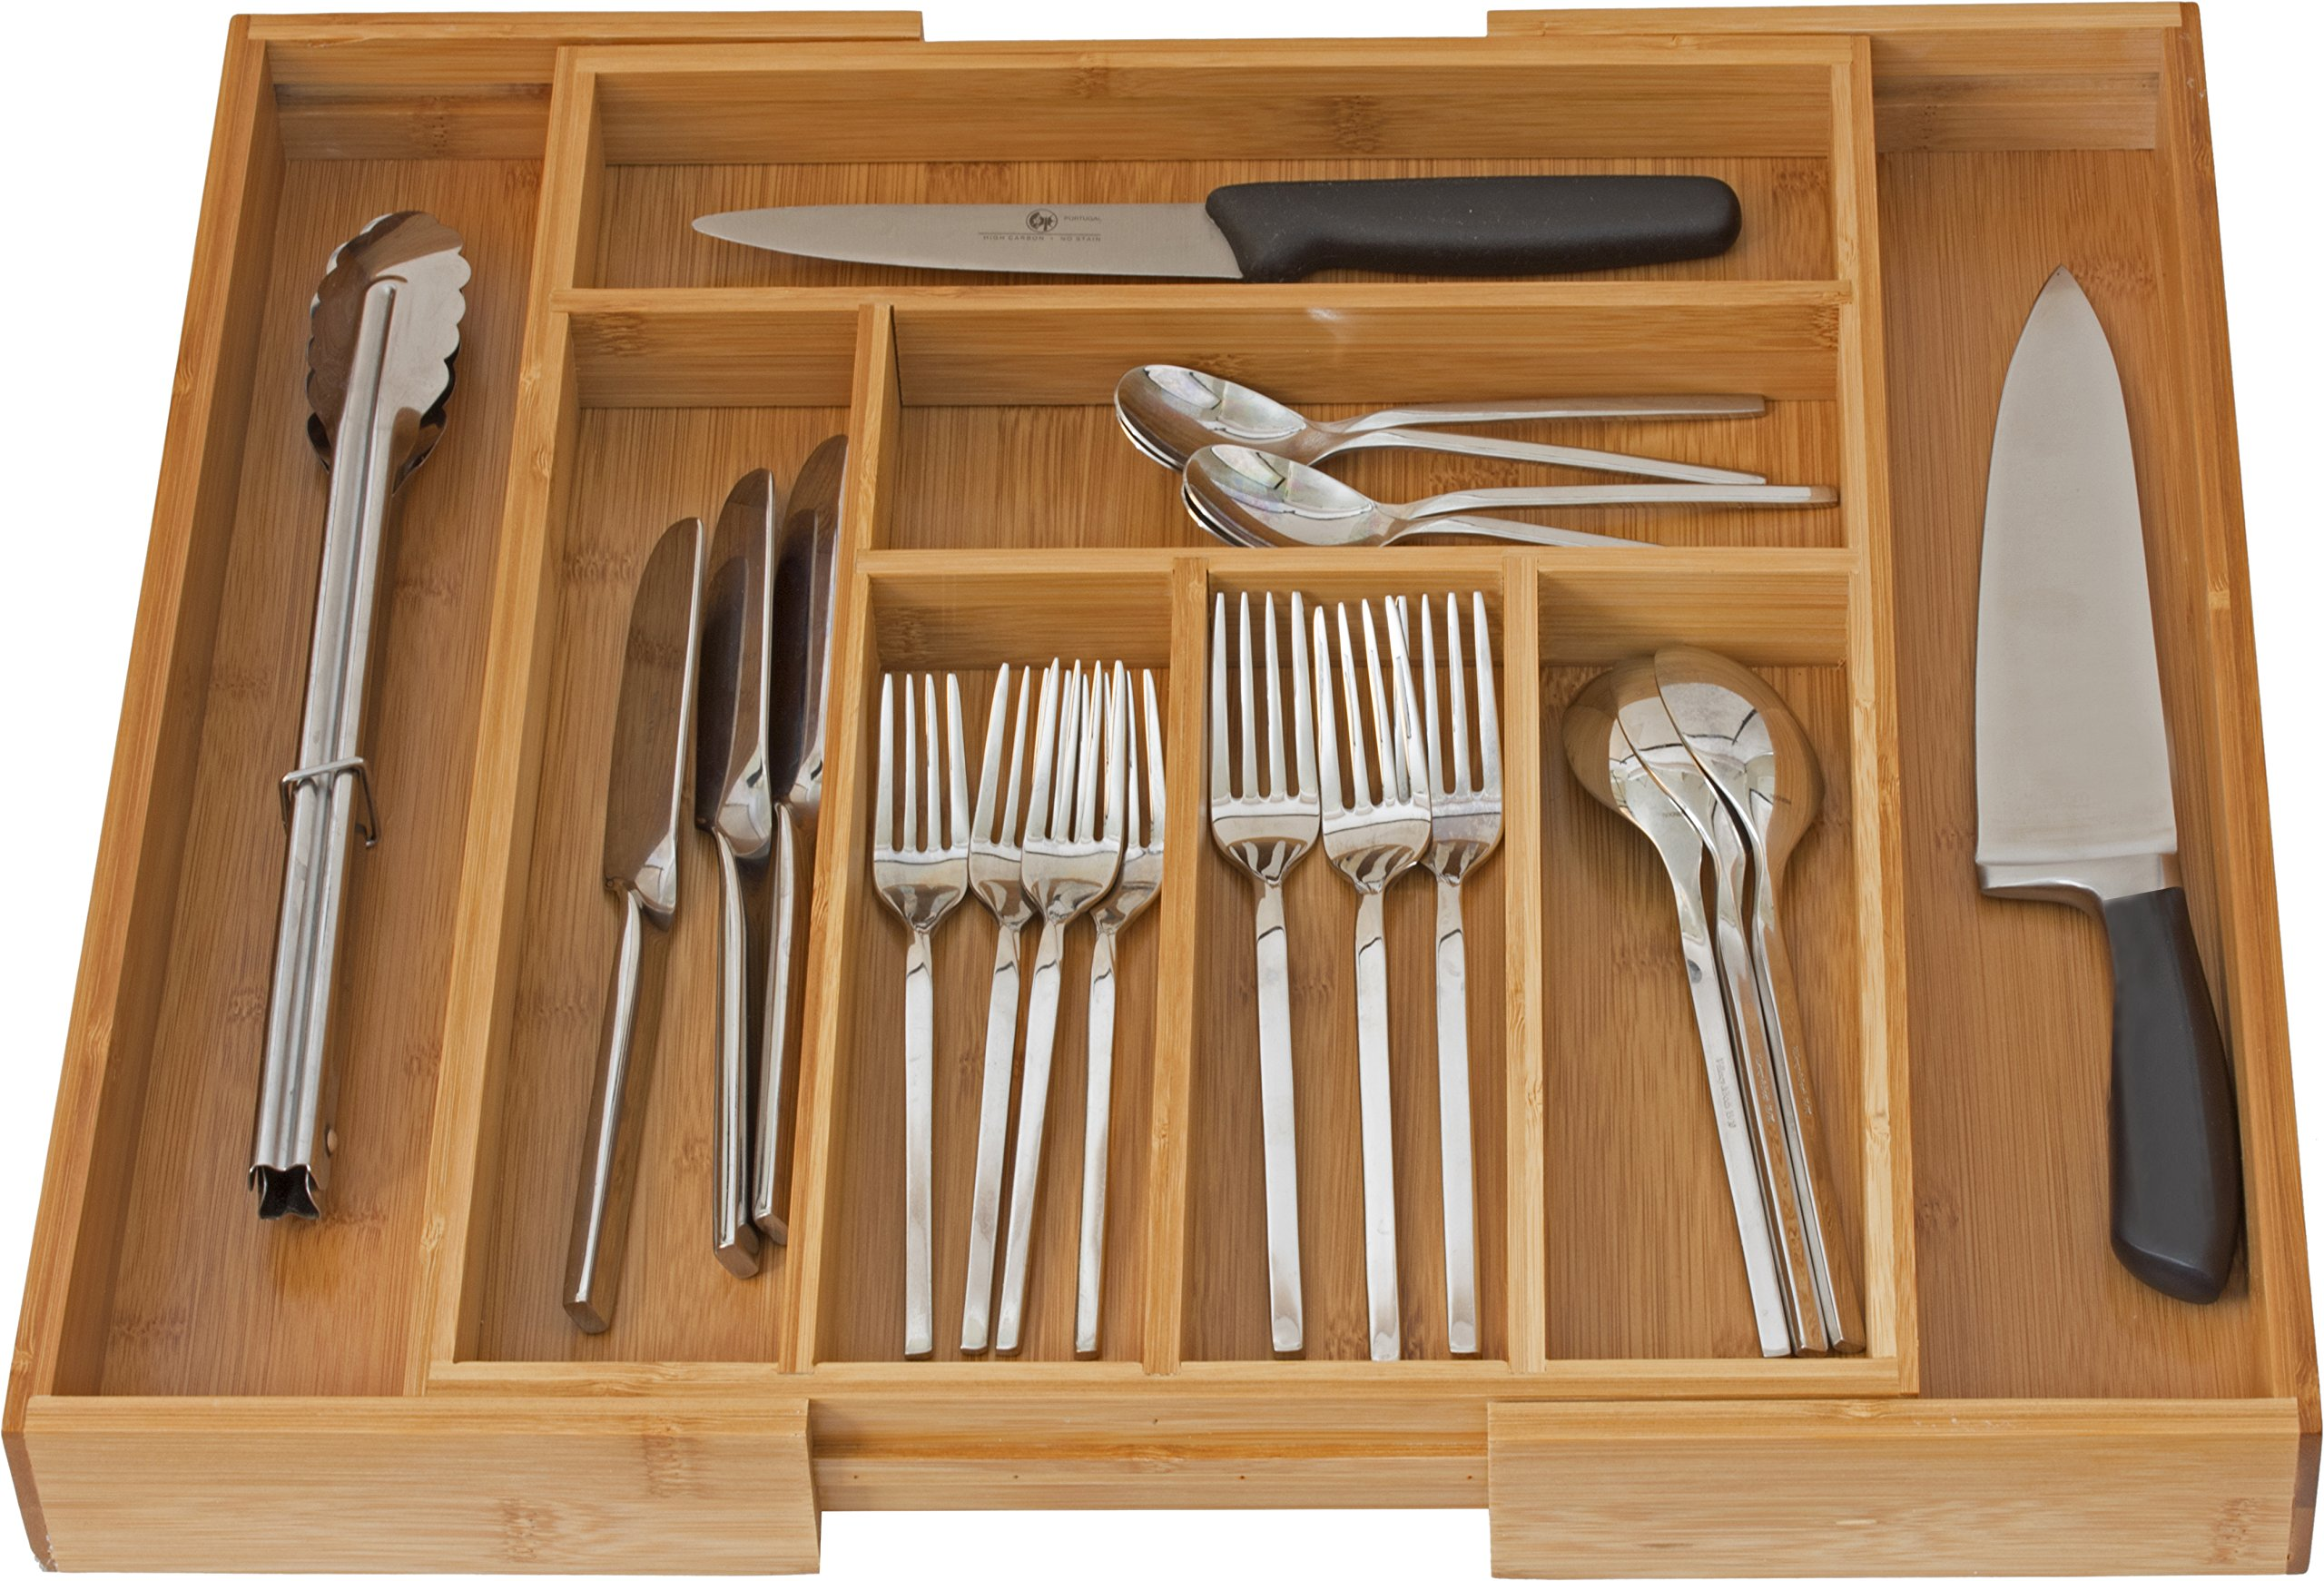 Home-it Expandable Cutlery Drawer Organizer, Utensil